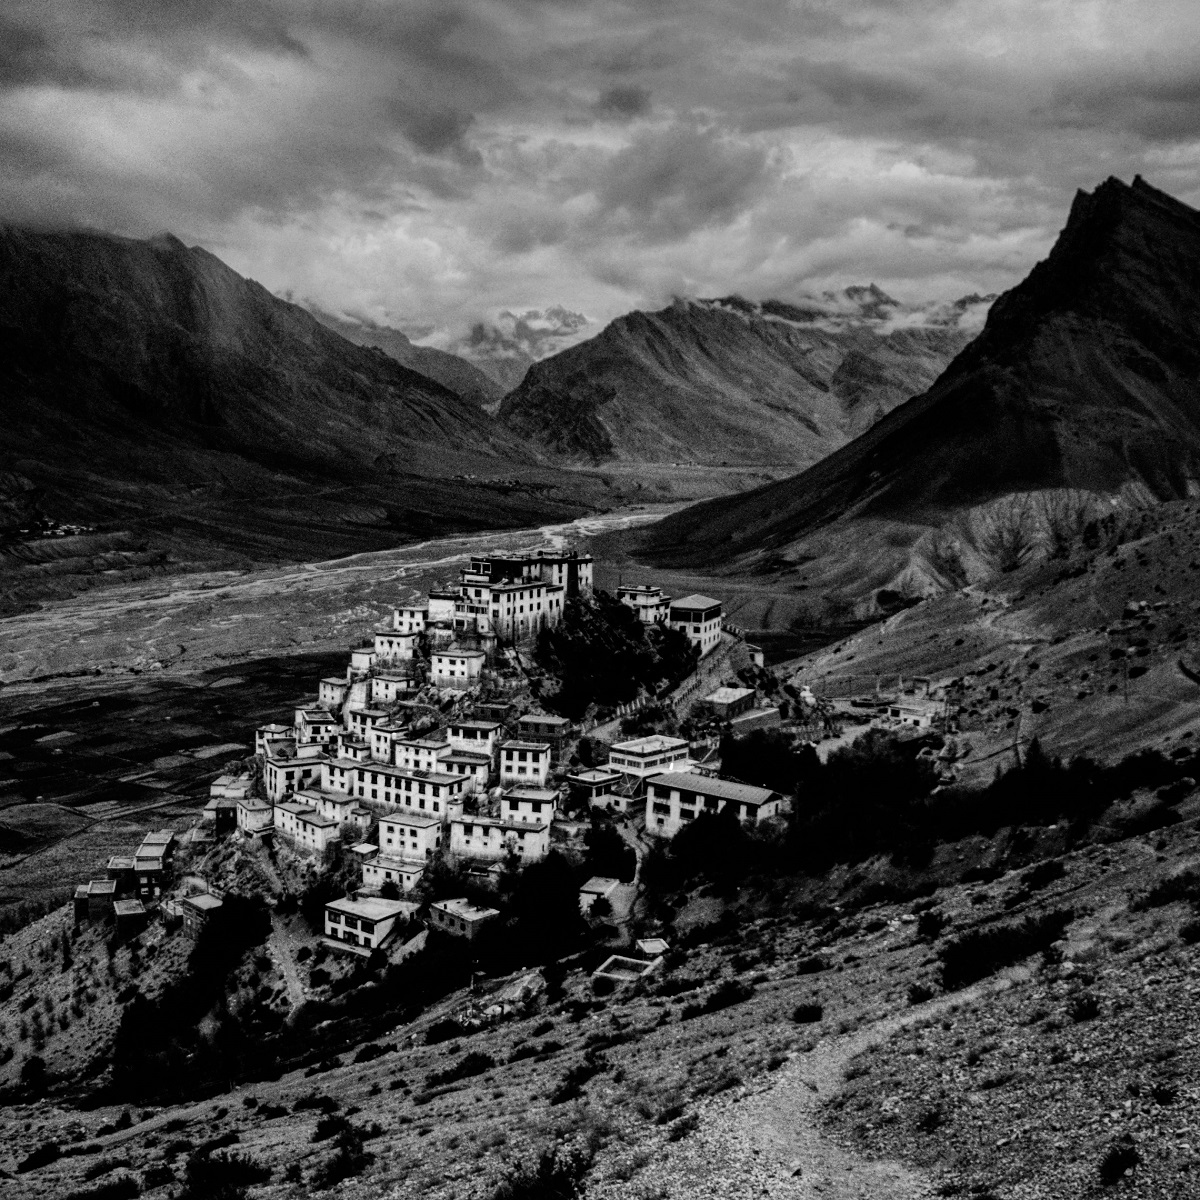 The Key monastery in Spiti Monasteries Valley. Over 1,000 years old, this is the oldest training center for Lamas.